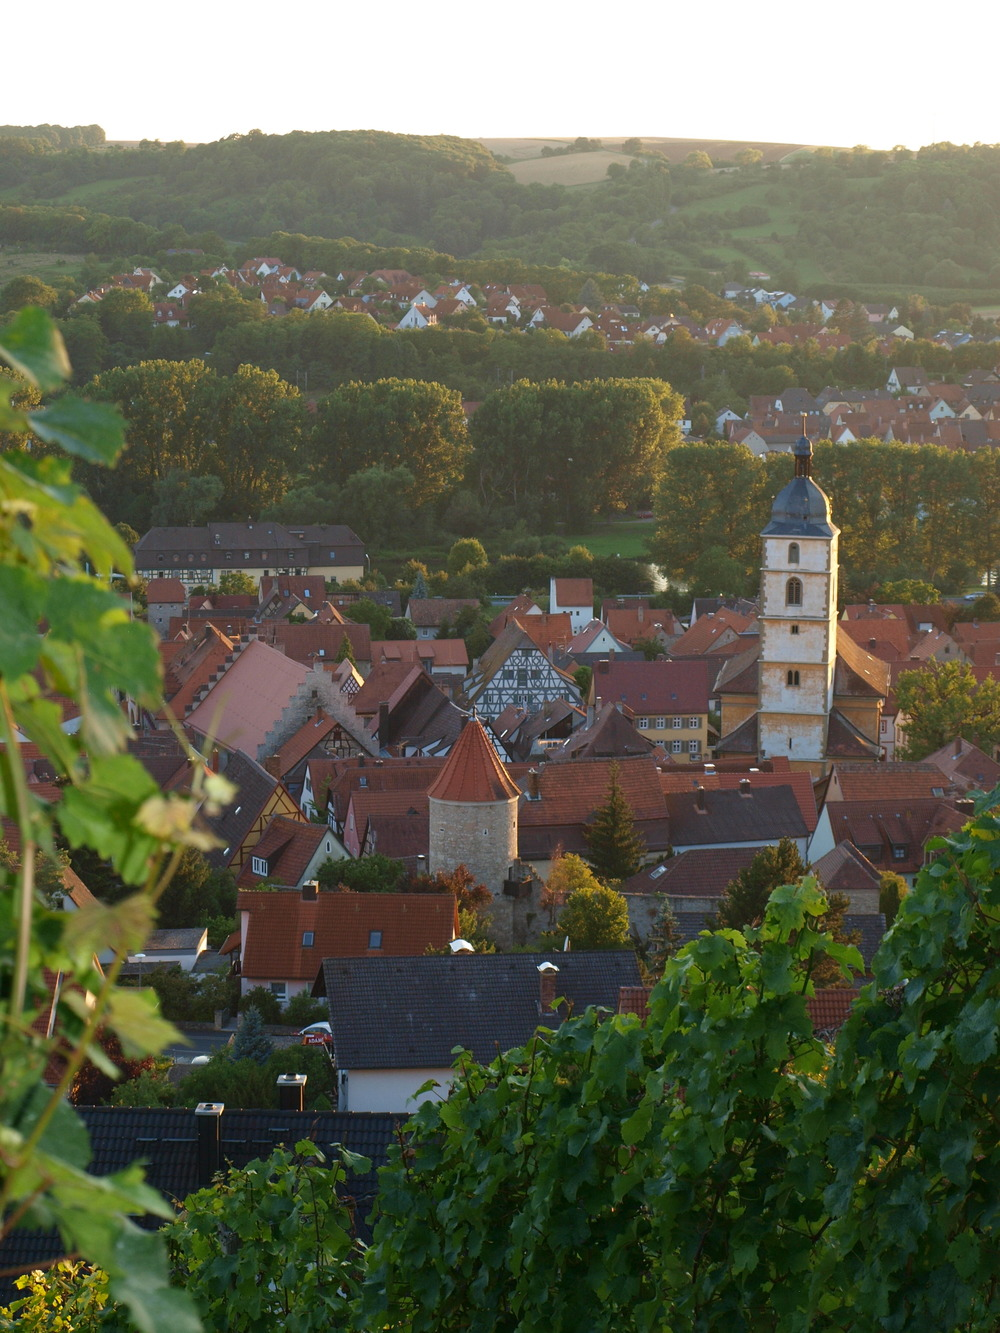 Sommerhausen - Viewed from the Vineyard